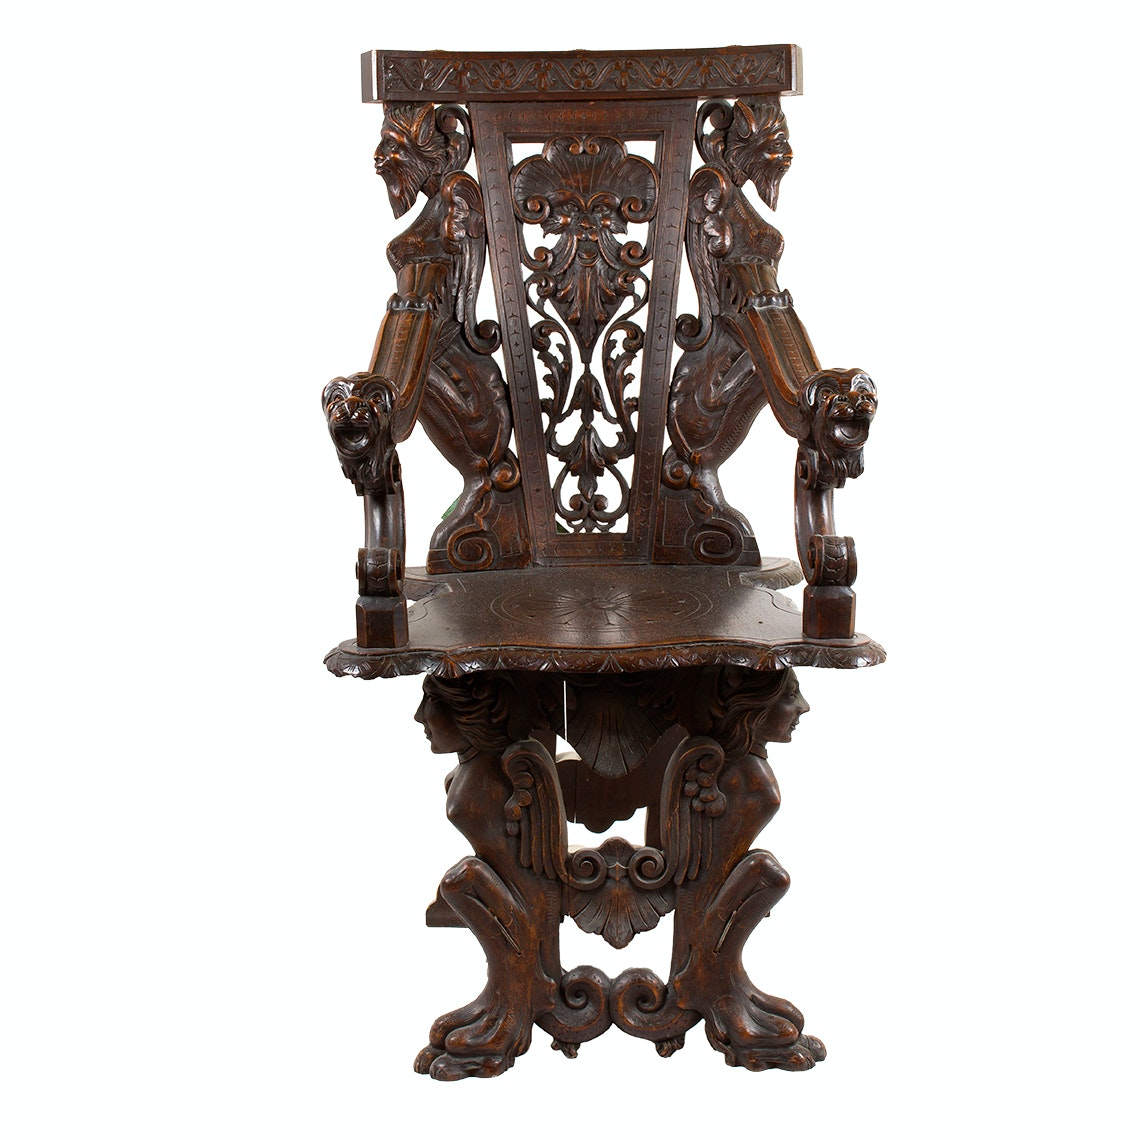 Antique Italian Renaissance Revival Carved Walnut Hall Chair